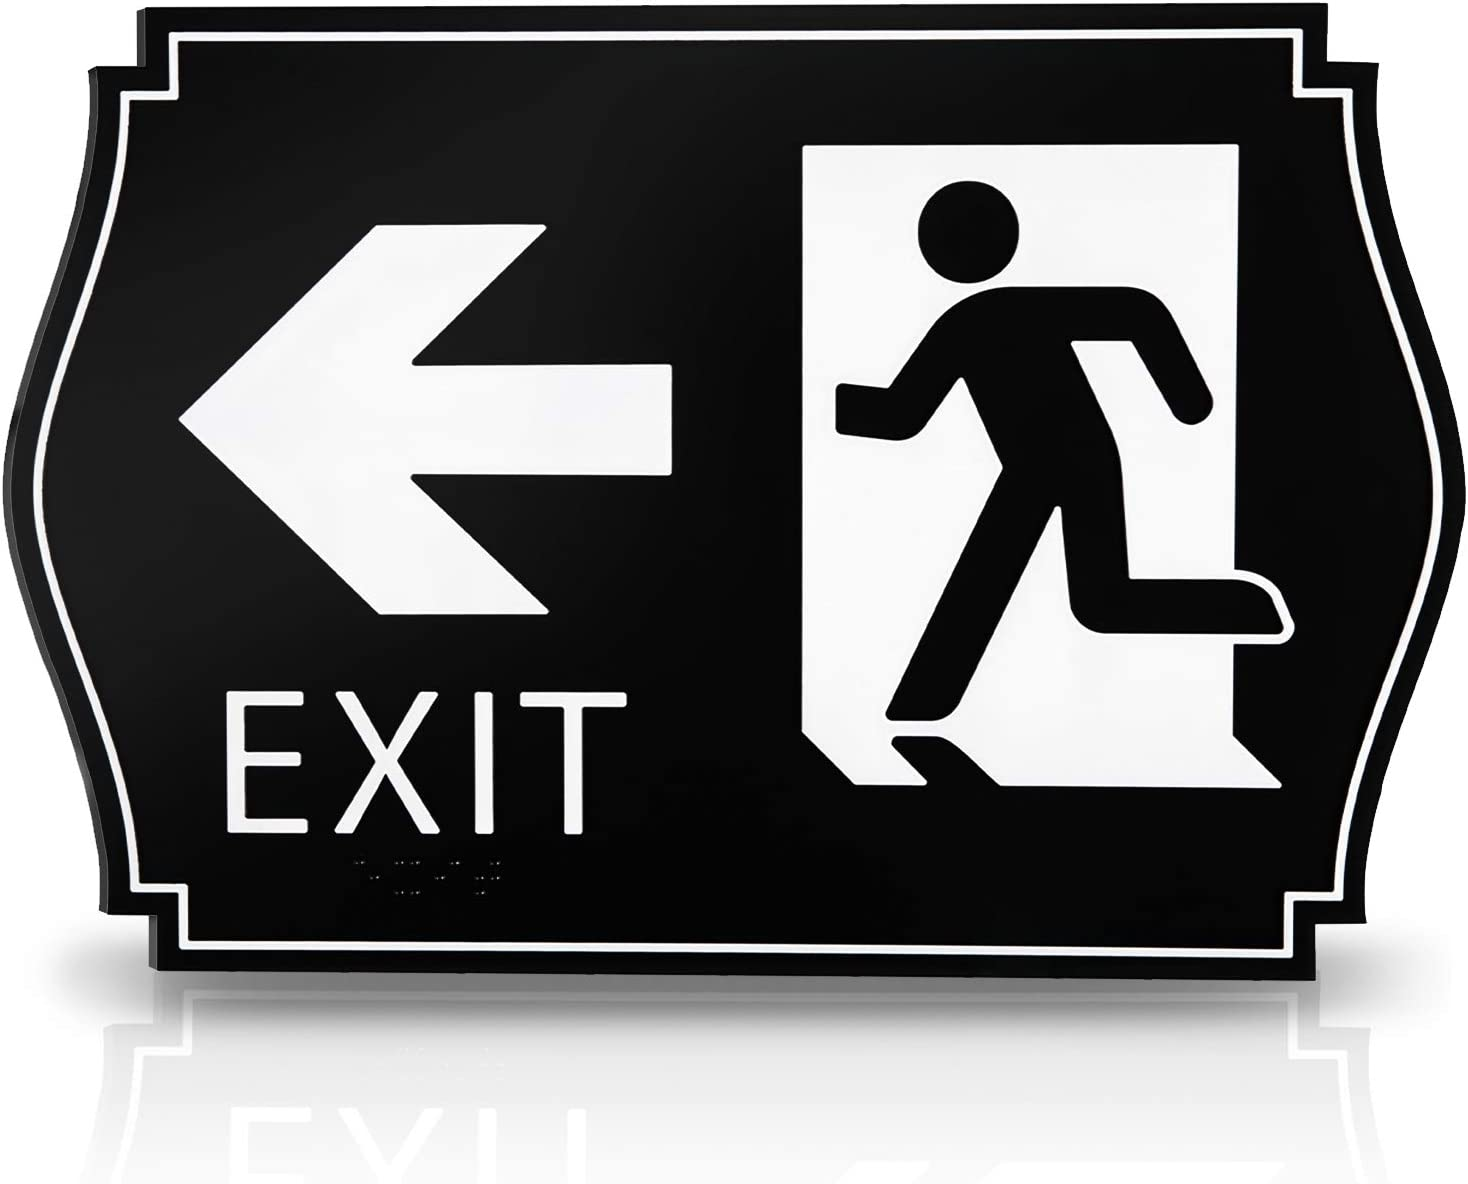 KickFire Classics Braille Exit Sign - ADA Compliant Black and White Signage, Self-Adhesive Mounted - Tactile Emergency Route Board for Office, Business, Stairwell and Restaurant - Arrow to The Left